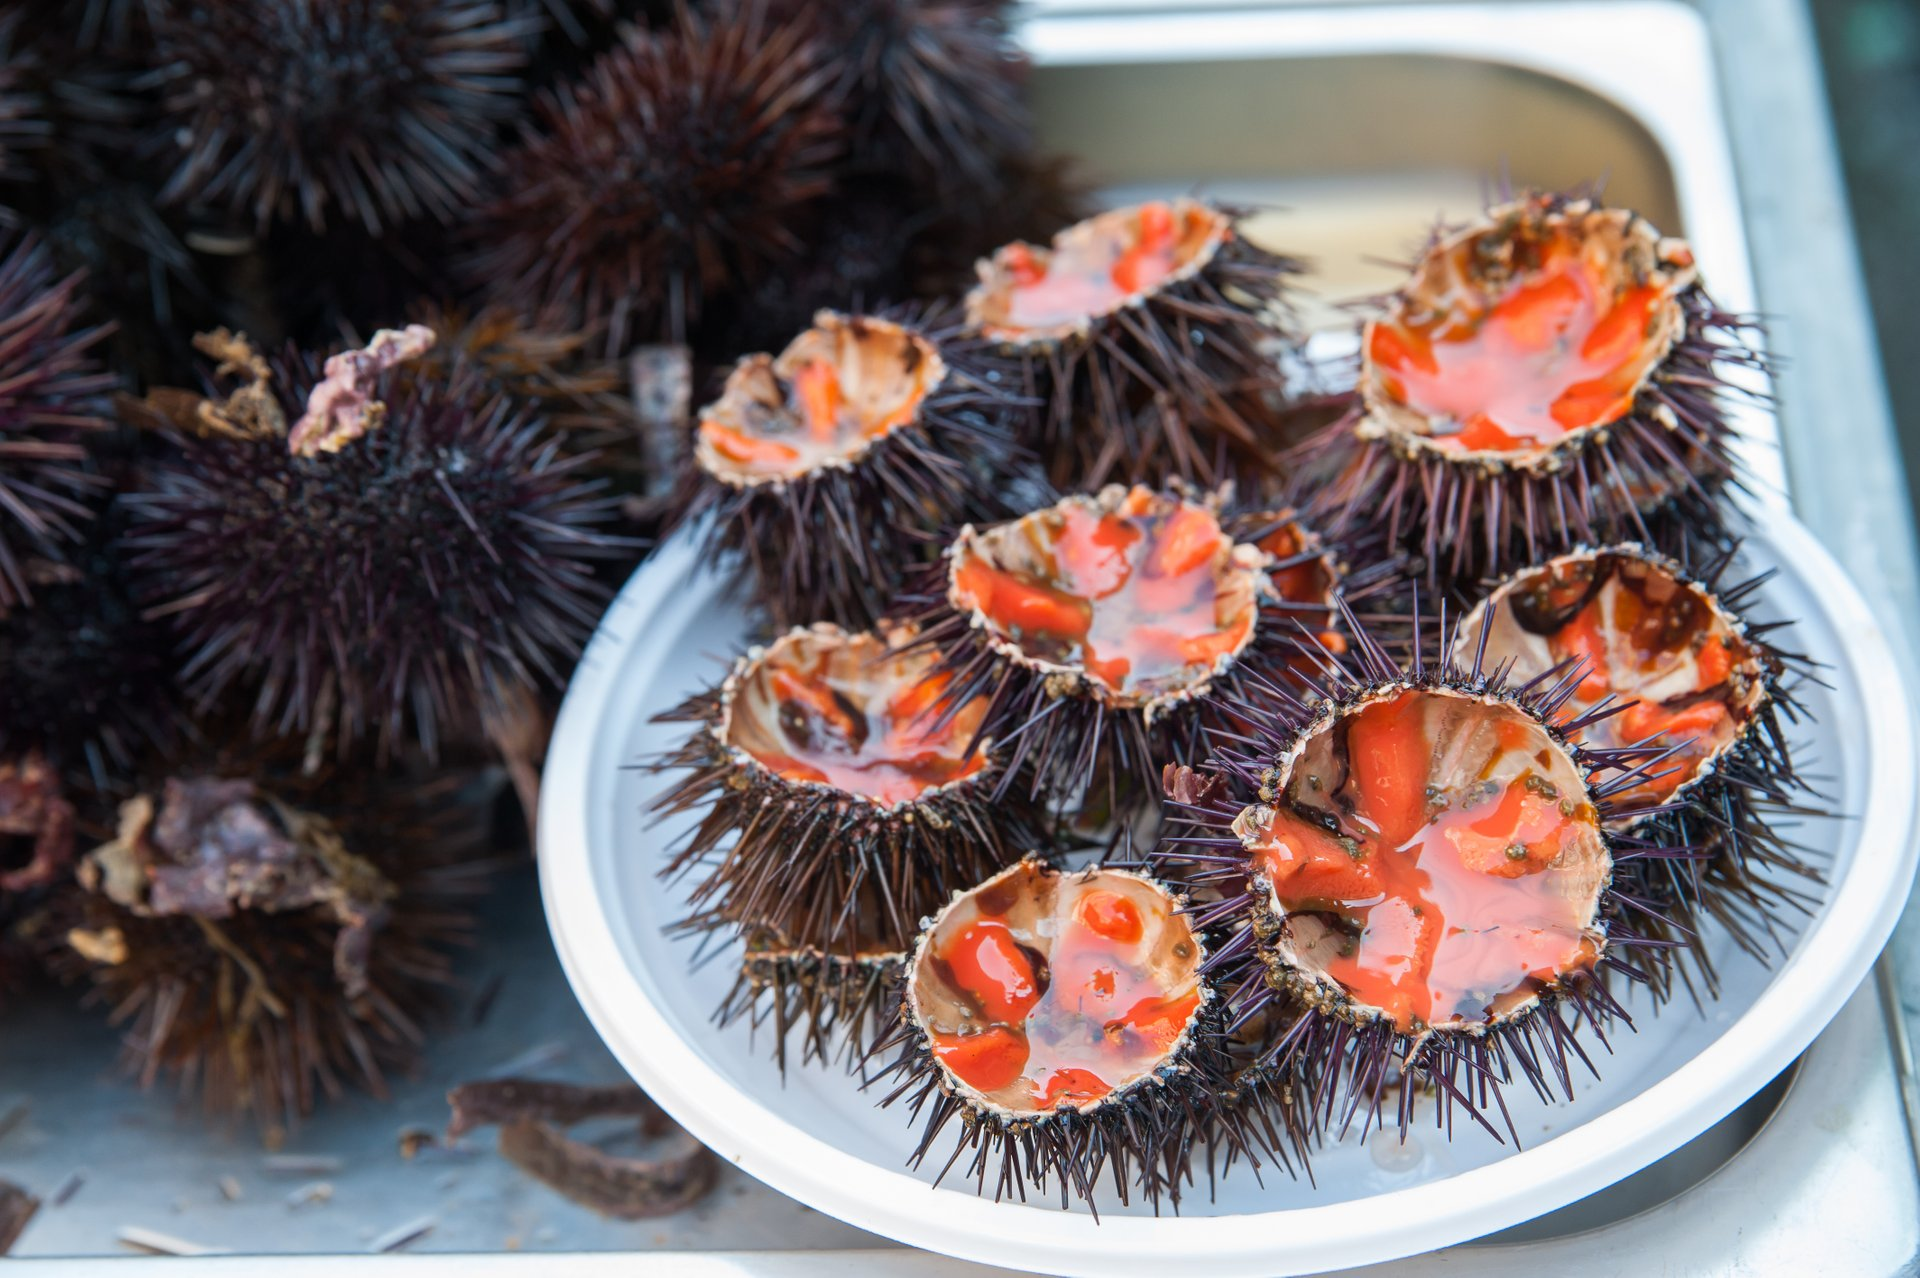 Sea Urchins in Sicily - Best Time